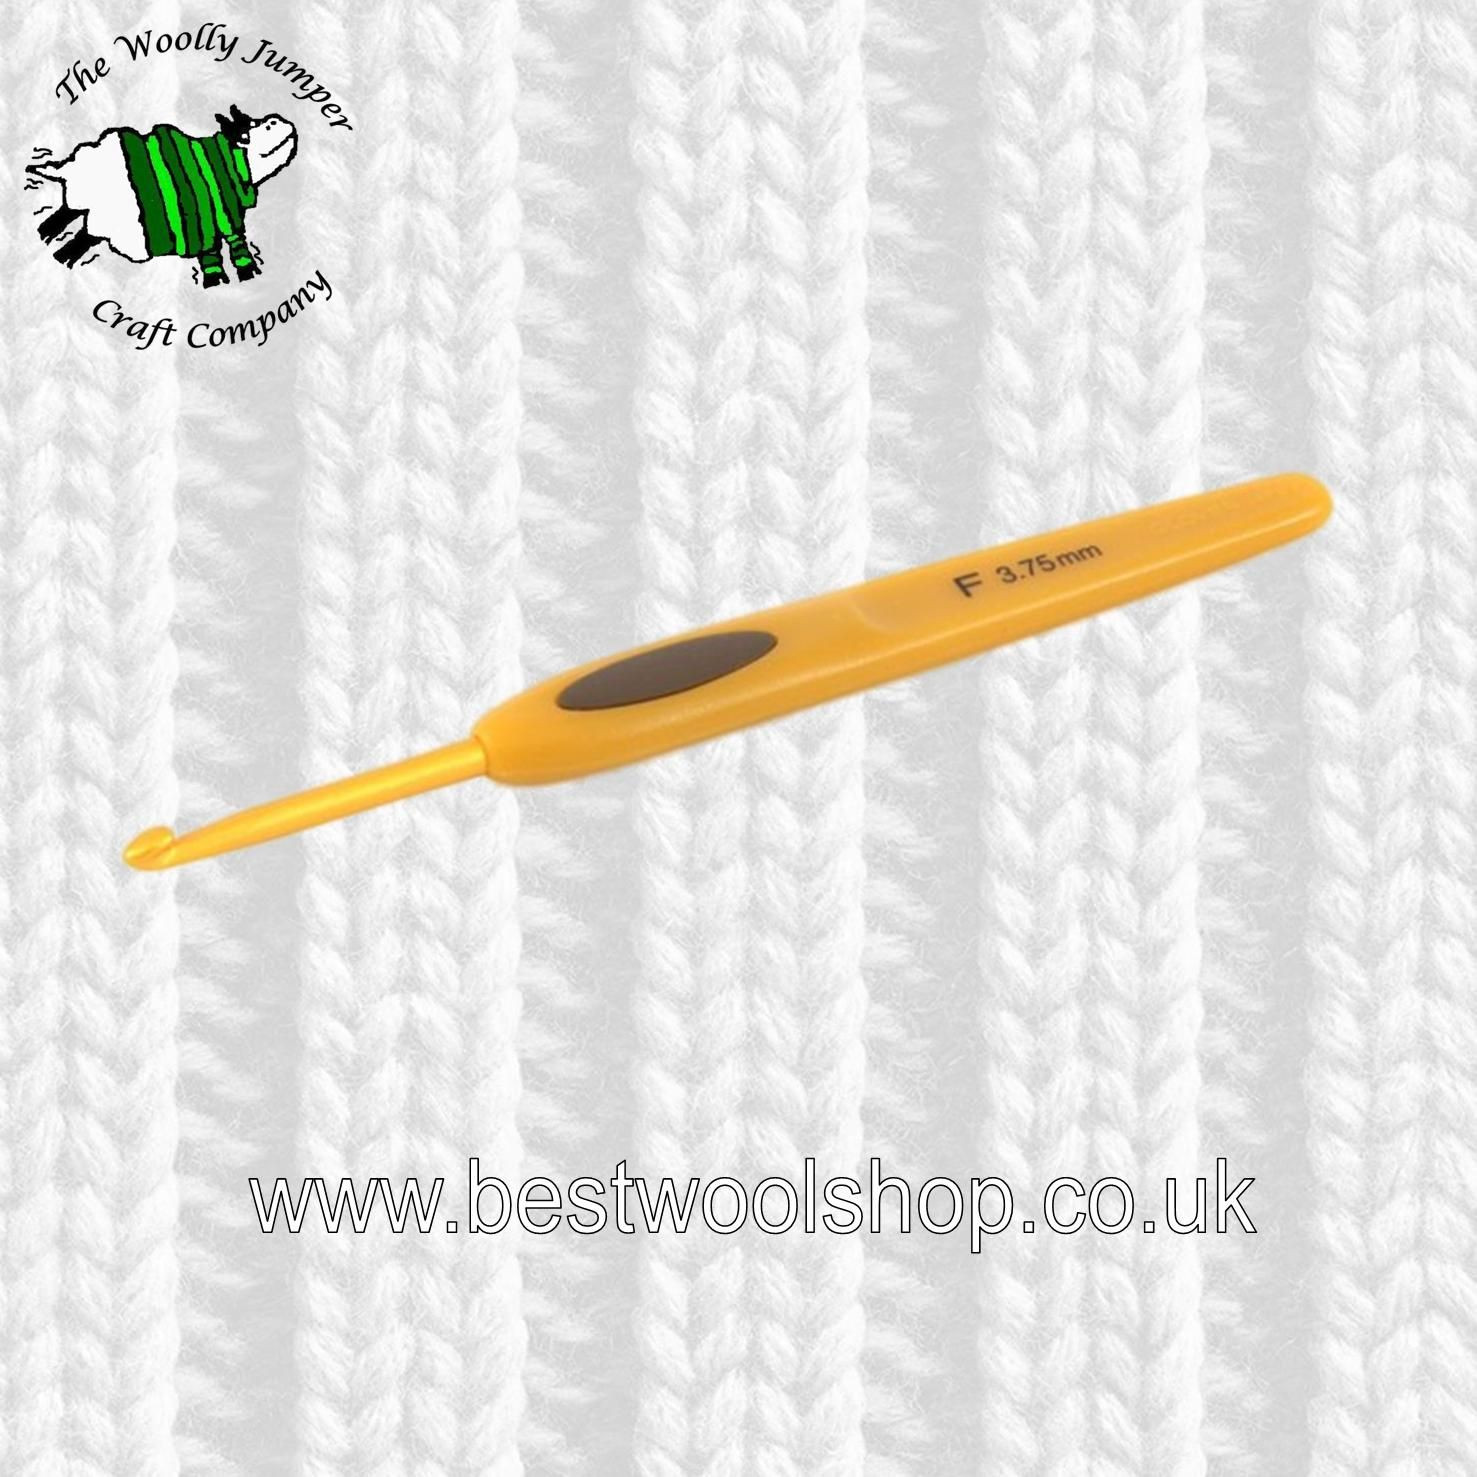 Elegant 3 75 Mm Clover soft touch Crochet Hook F Clover soft touch Crochet Hooks Of Fresh Clover Ergonomic Hook 3 Mm Clover soft touch Crochet Hooks